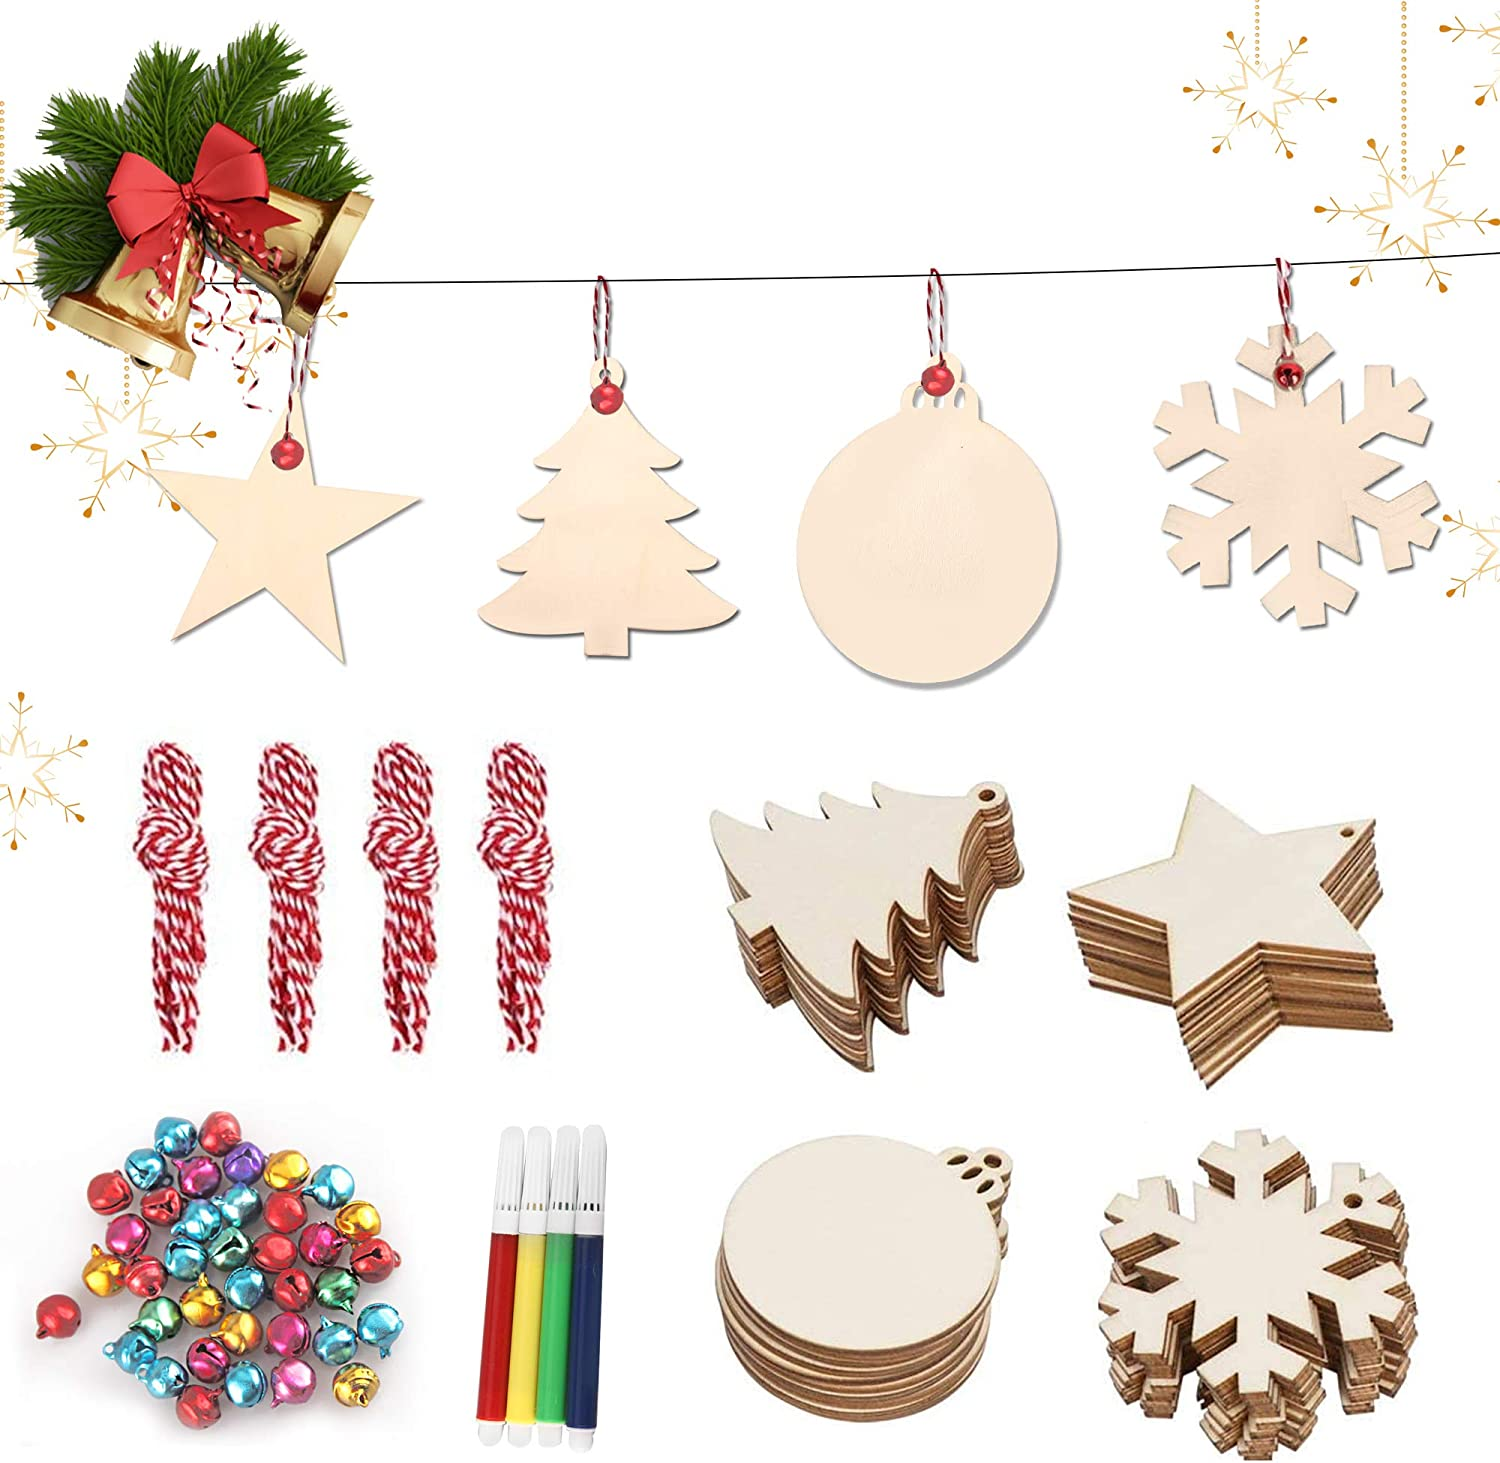 Now free shipping Originalidad 124 Pcs Wooden Christmas Unfinis - Inventory cleanup selling sale 40 Ornaments